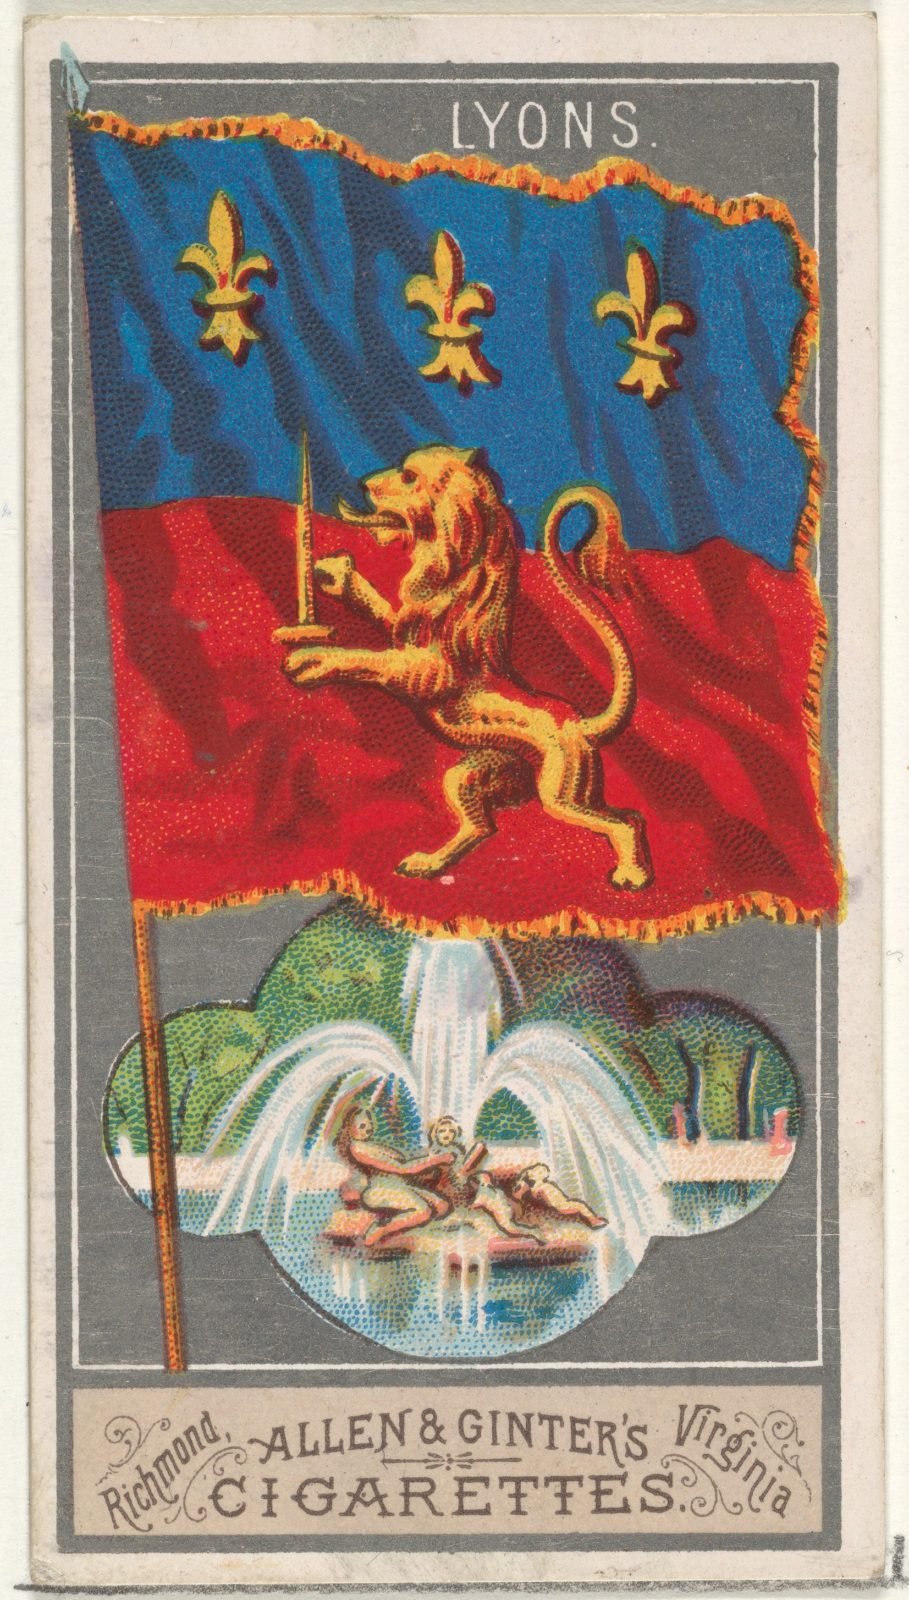 Lyons, from the City Flags series (N6) for Allen & Ginter Cigarettes Brands